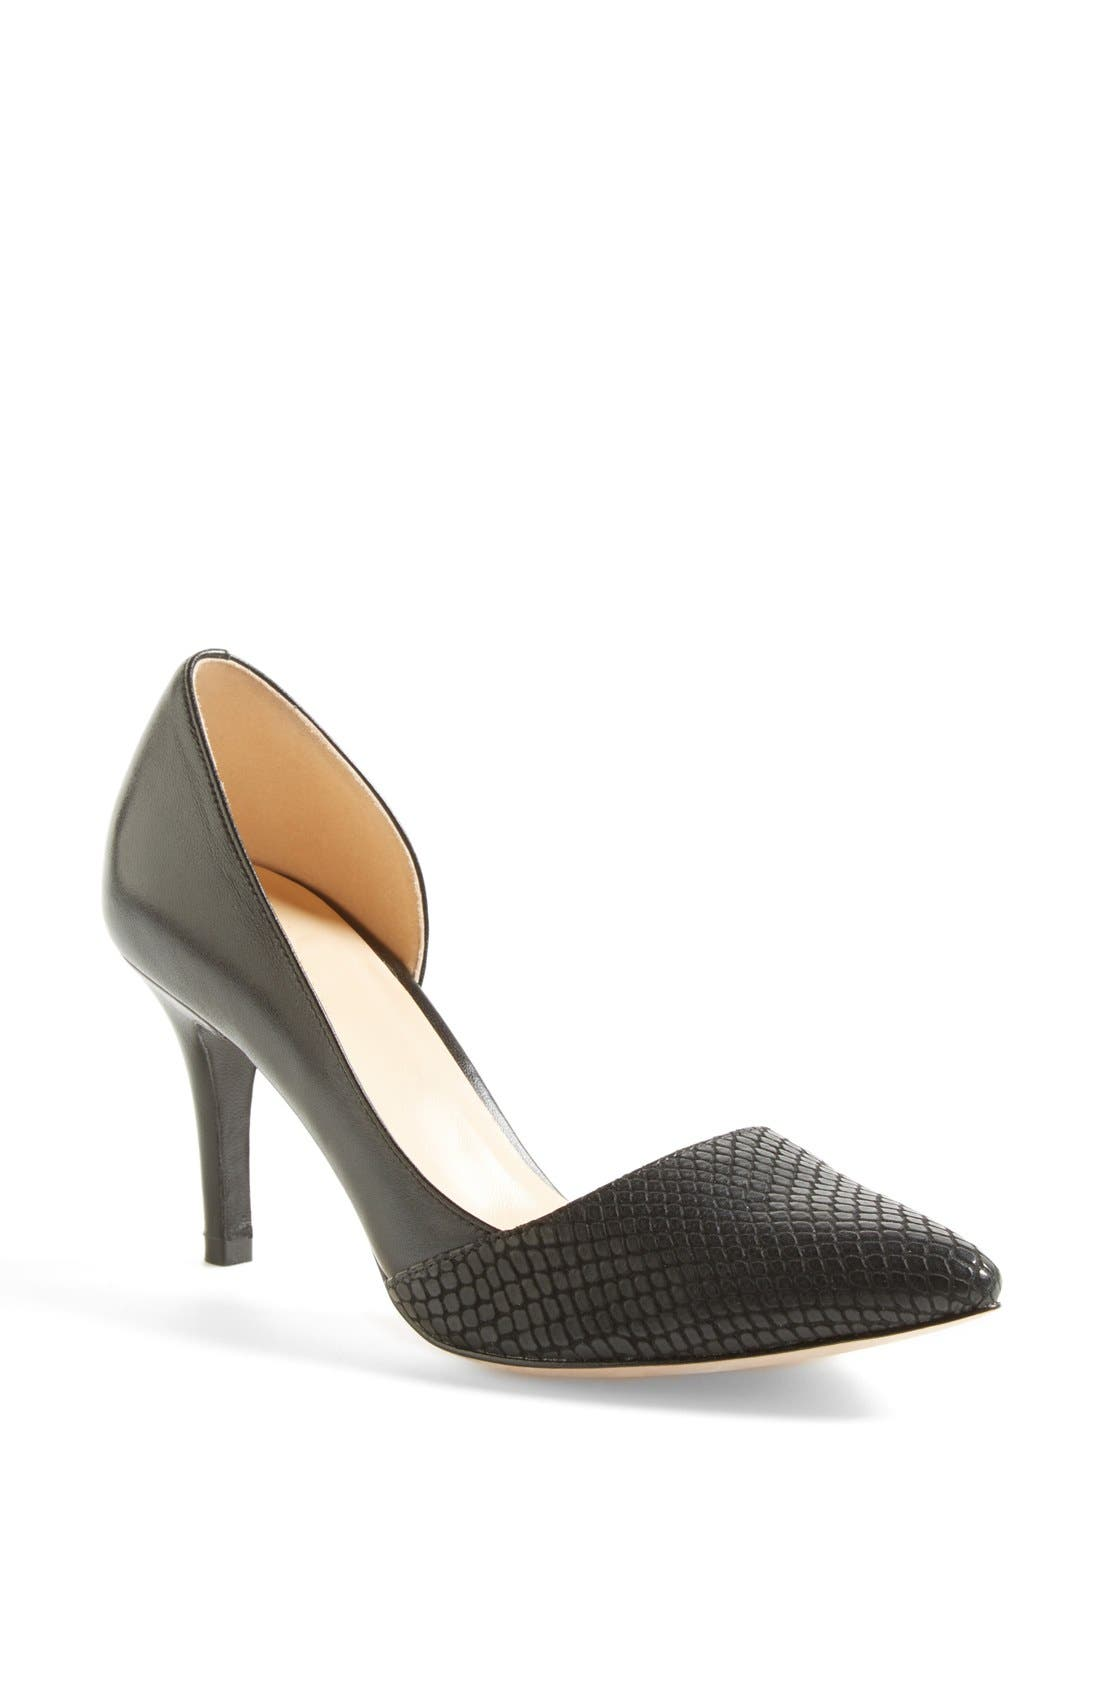 Main Image - Cole Haan 'Highline' Pump